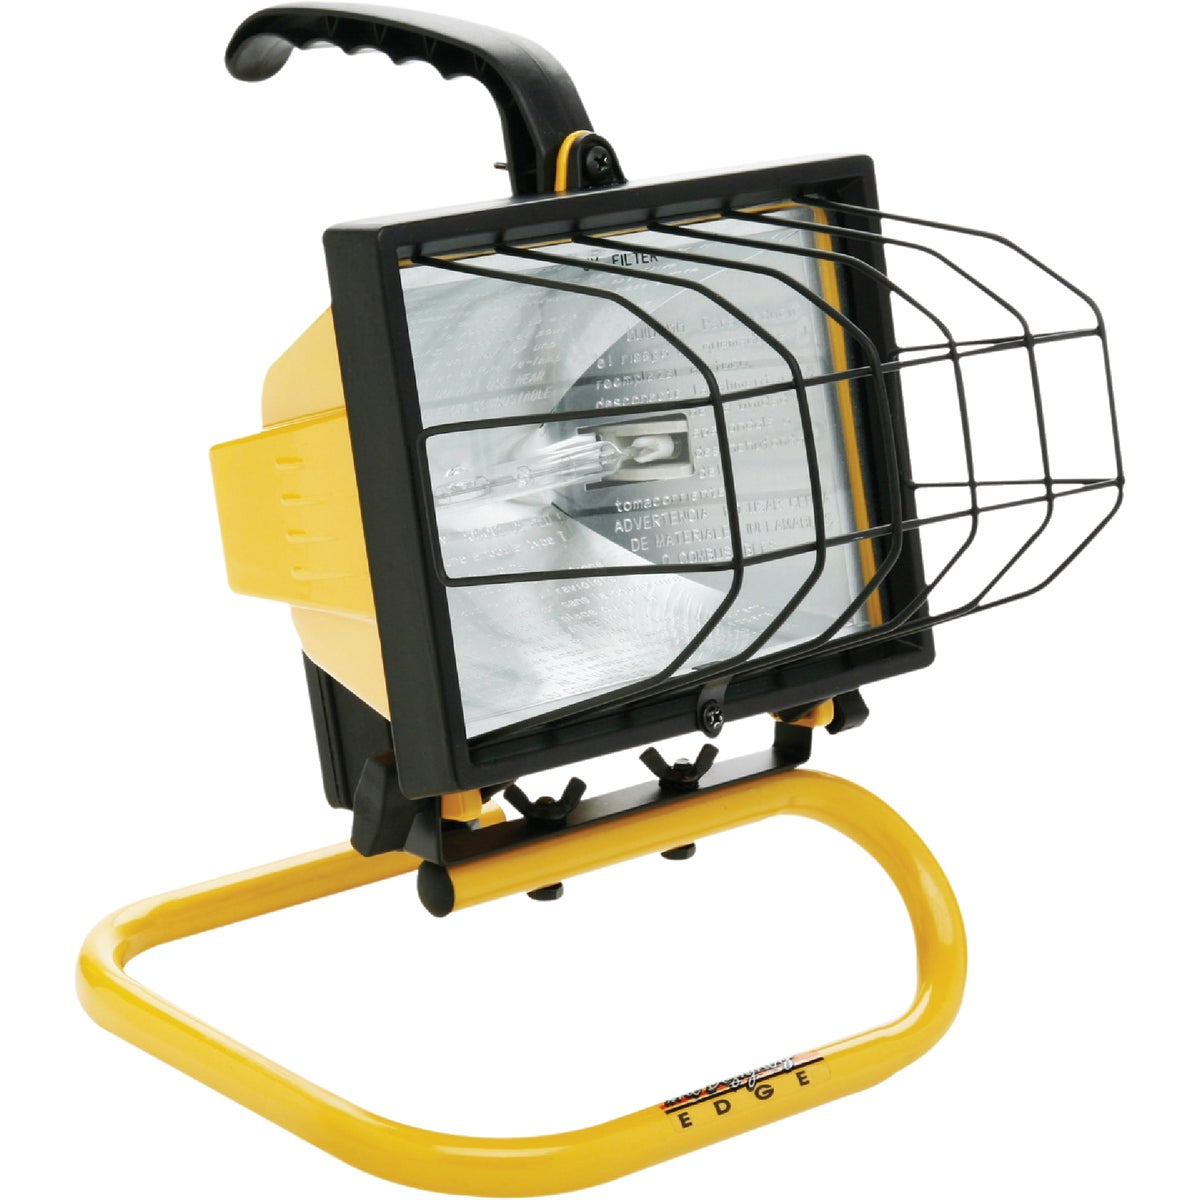 PORTABLE HALOGEN WORKLT - L-20 by Woods Wire Coleman